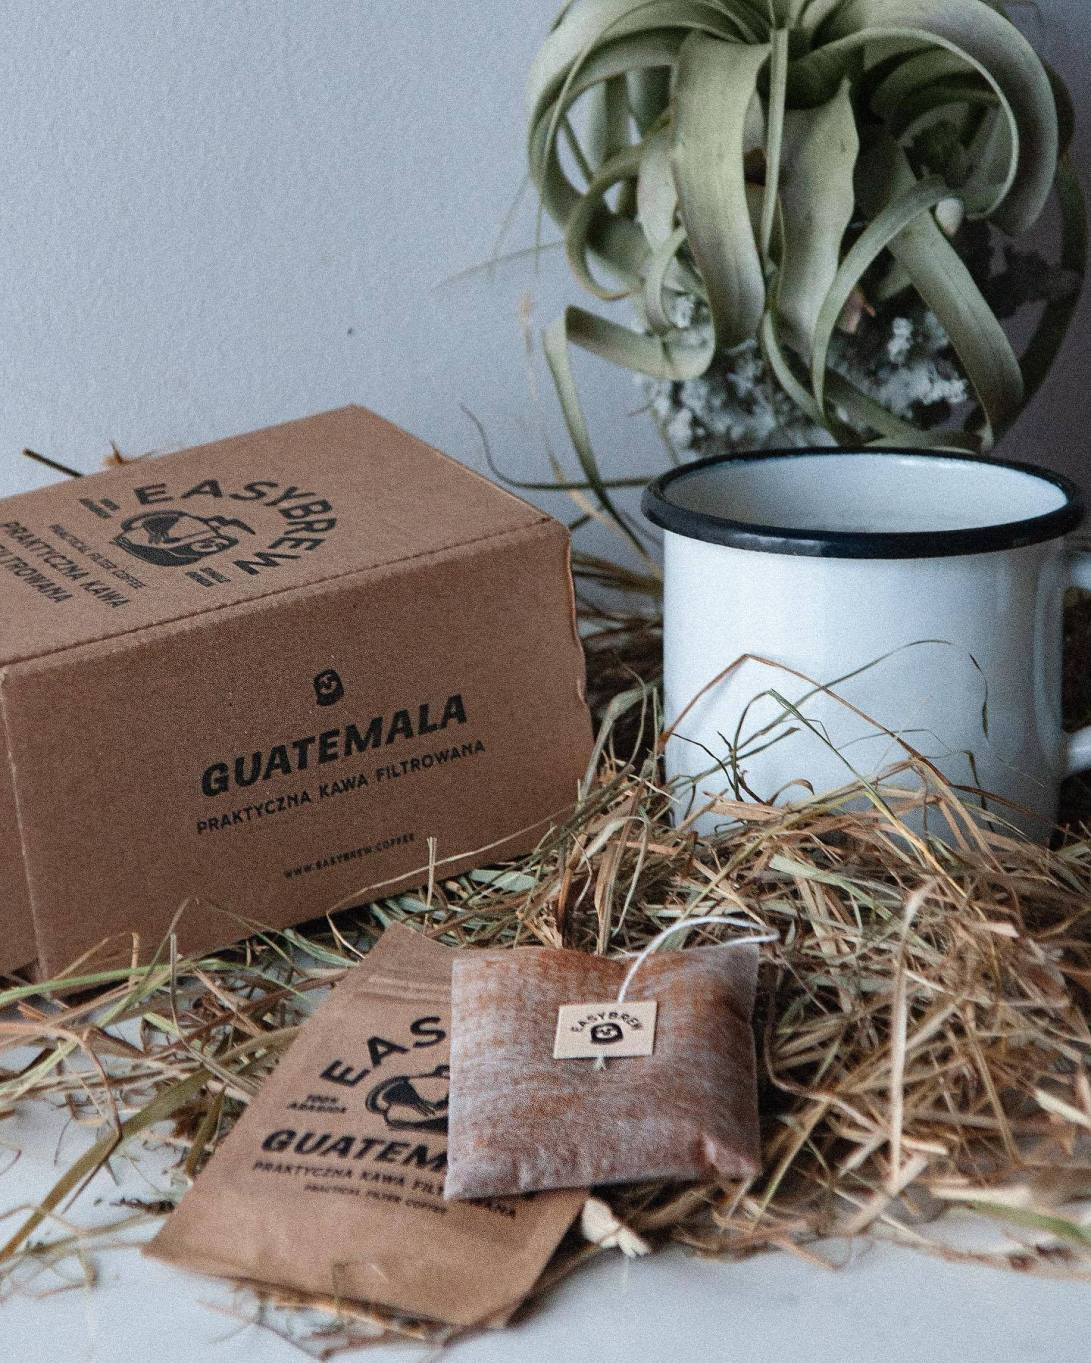 easy-brew-coffee-design-package-craft-box-paper-pouch-agency-studio-freelance-ny-usa-colorado-california-los-angeles-branding-packaging.jpg